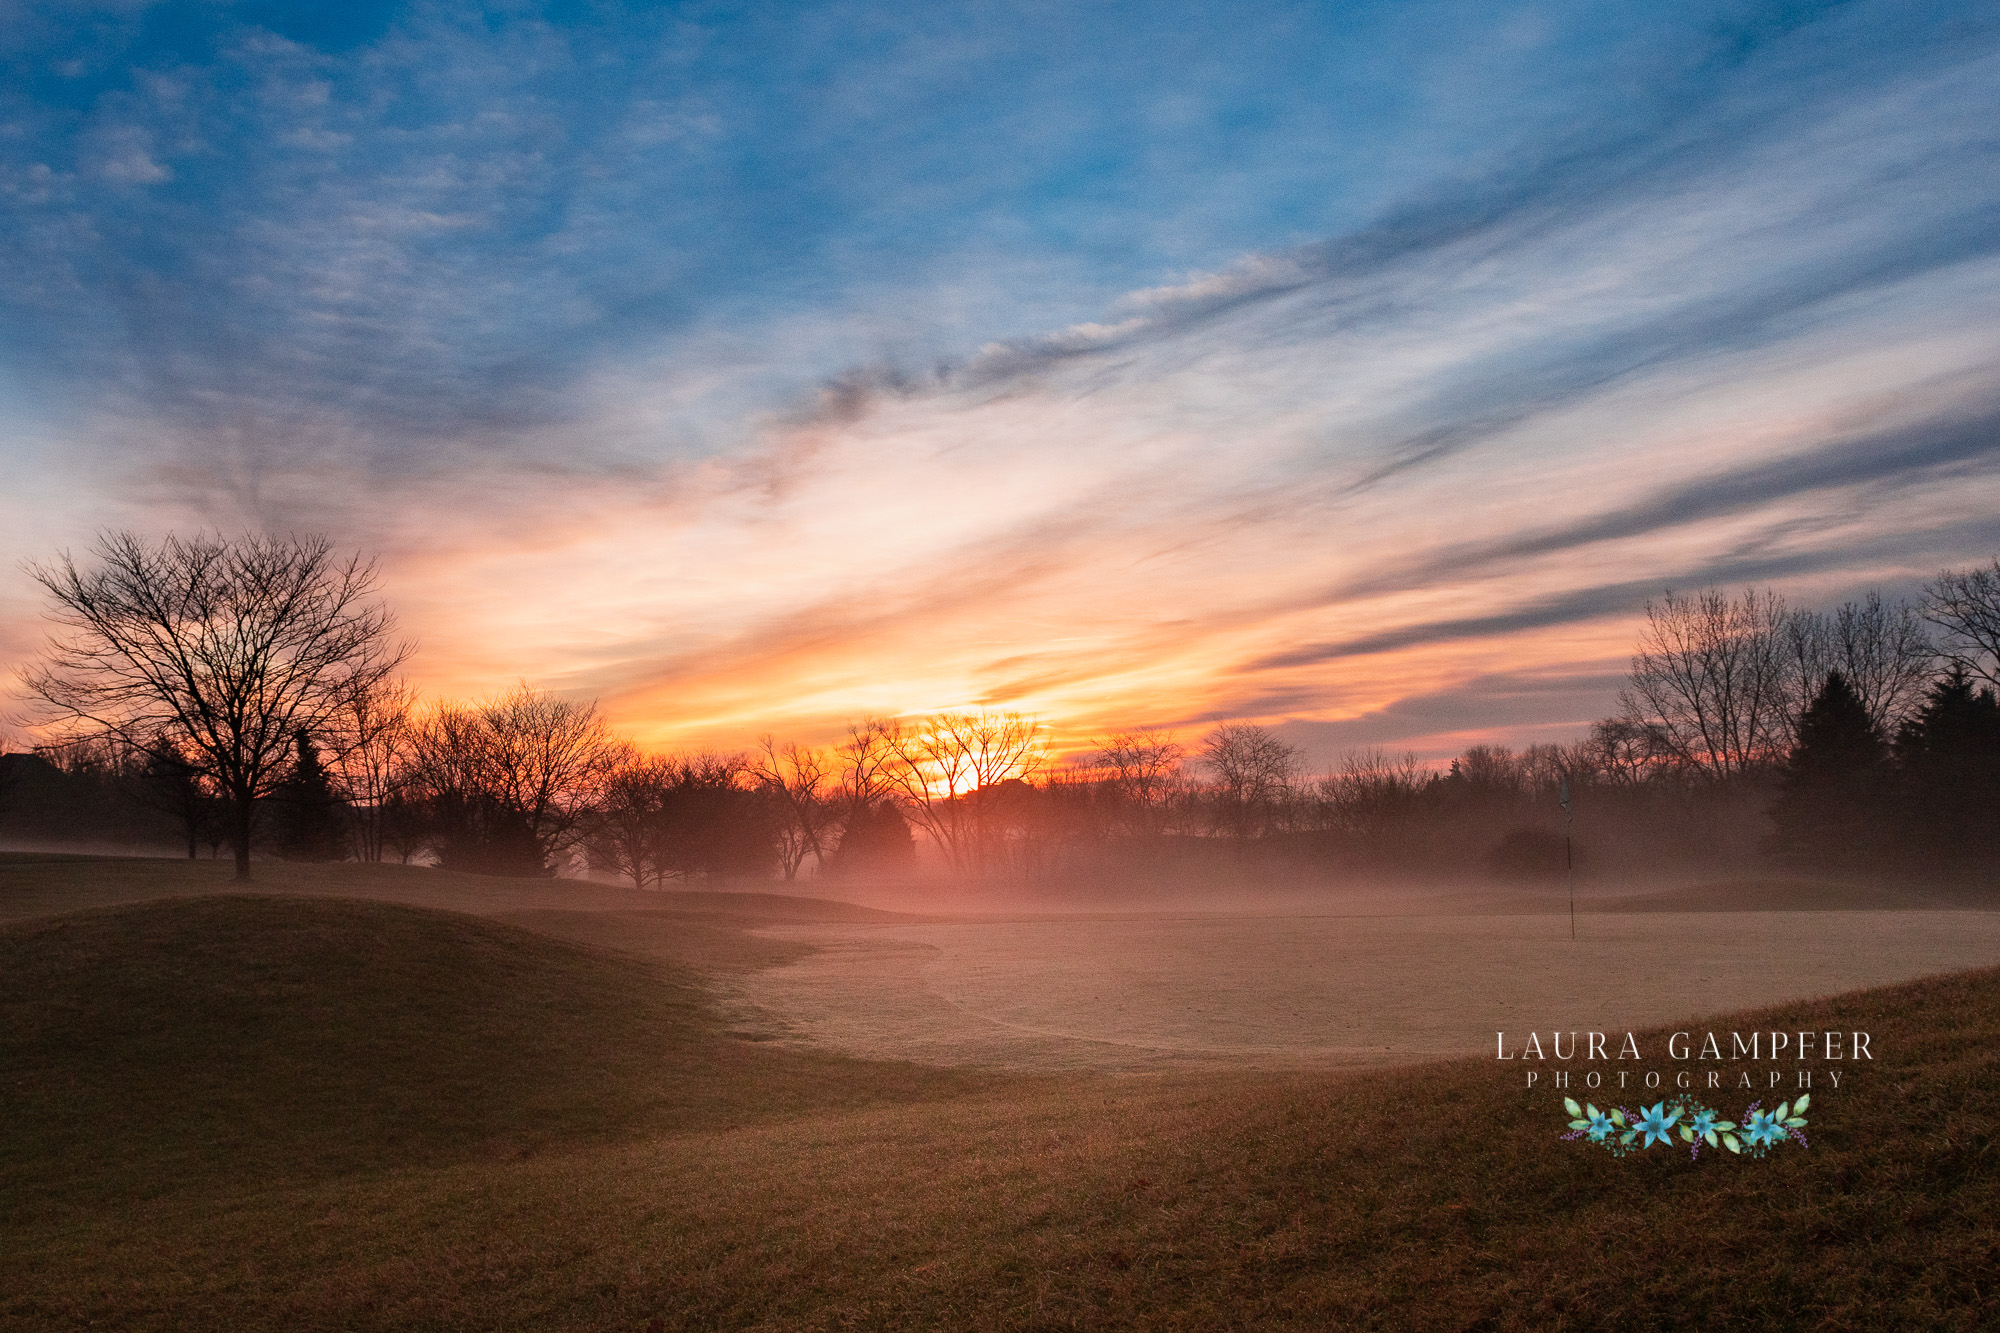 hughes-creek-golf-club-laura-gampfer-photography